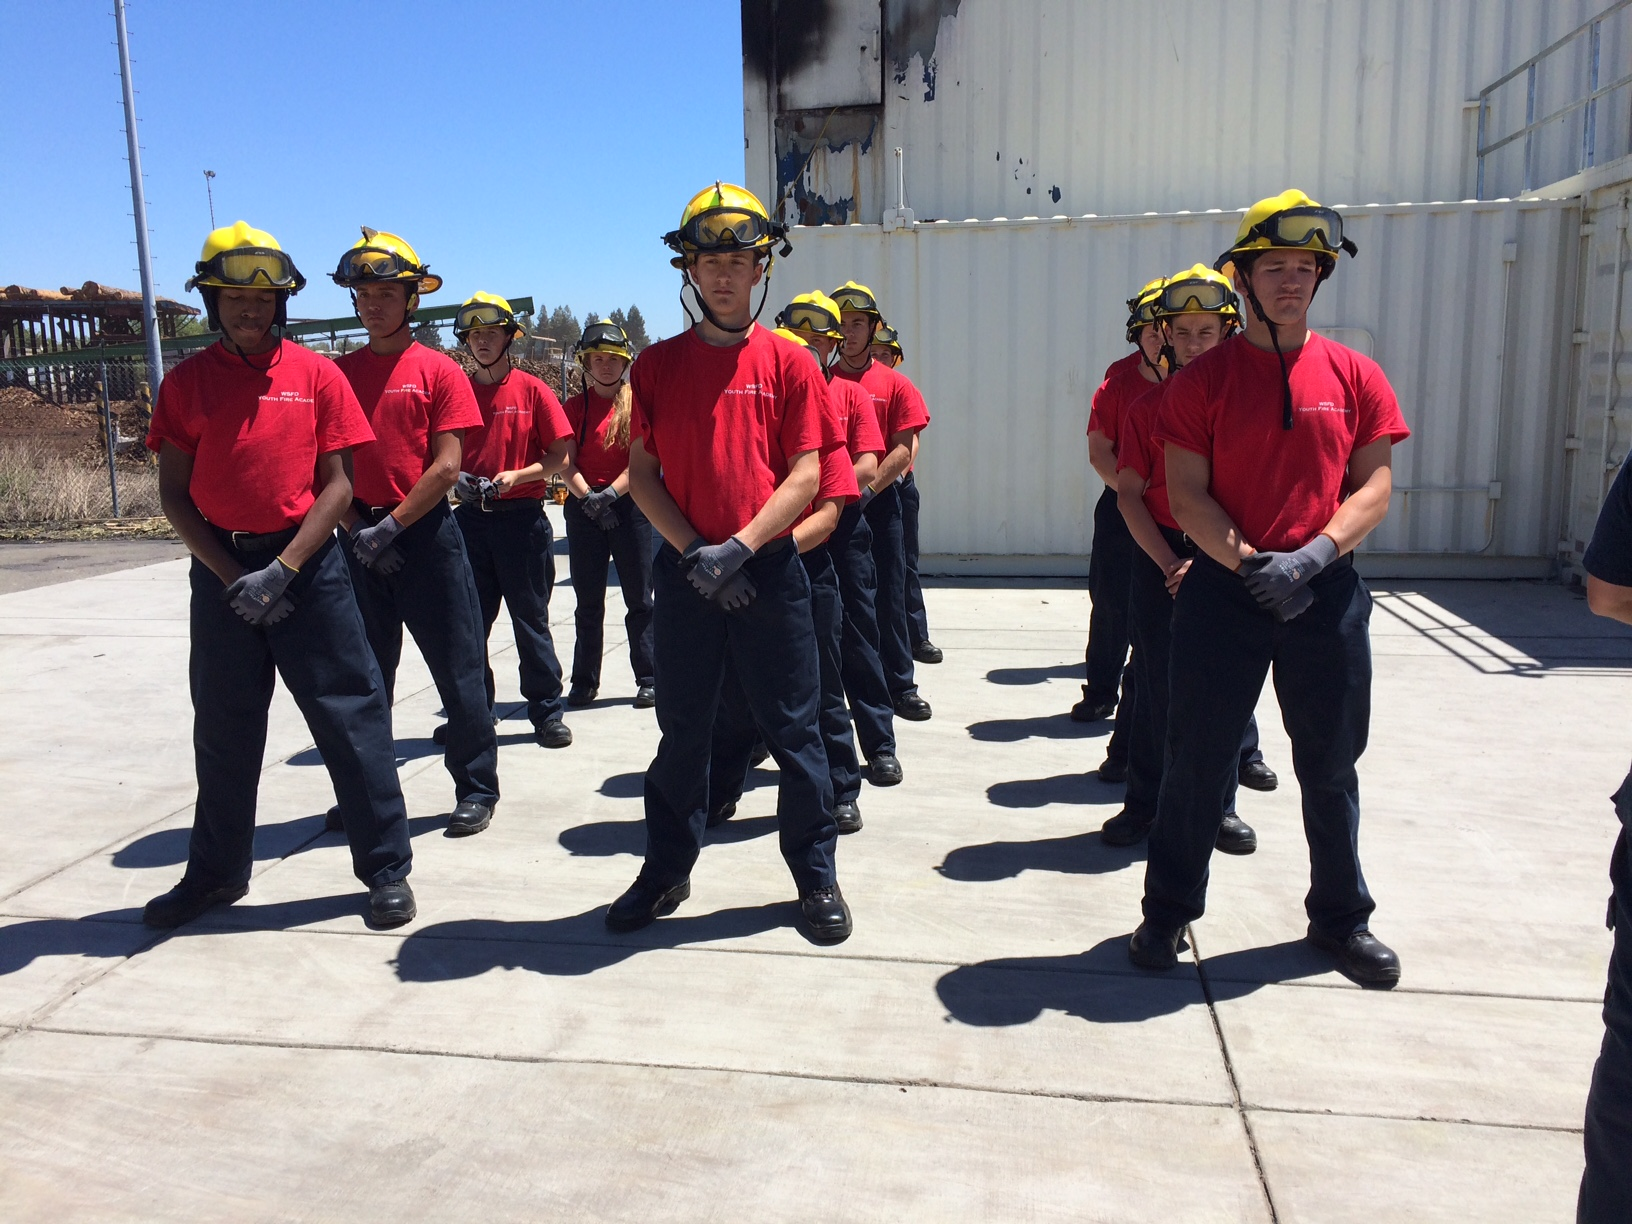 youth fire academy training at port of west sac